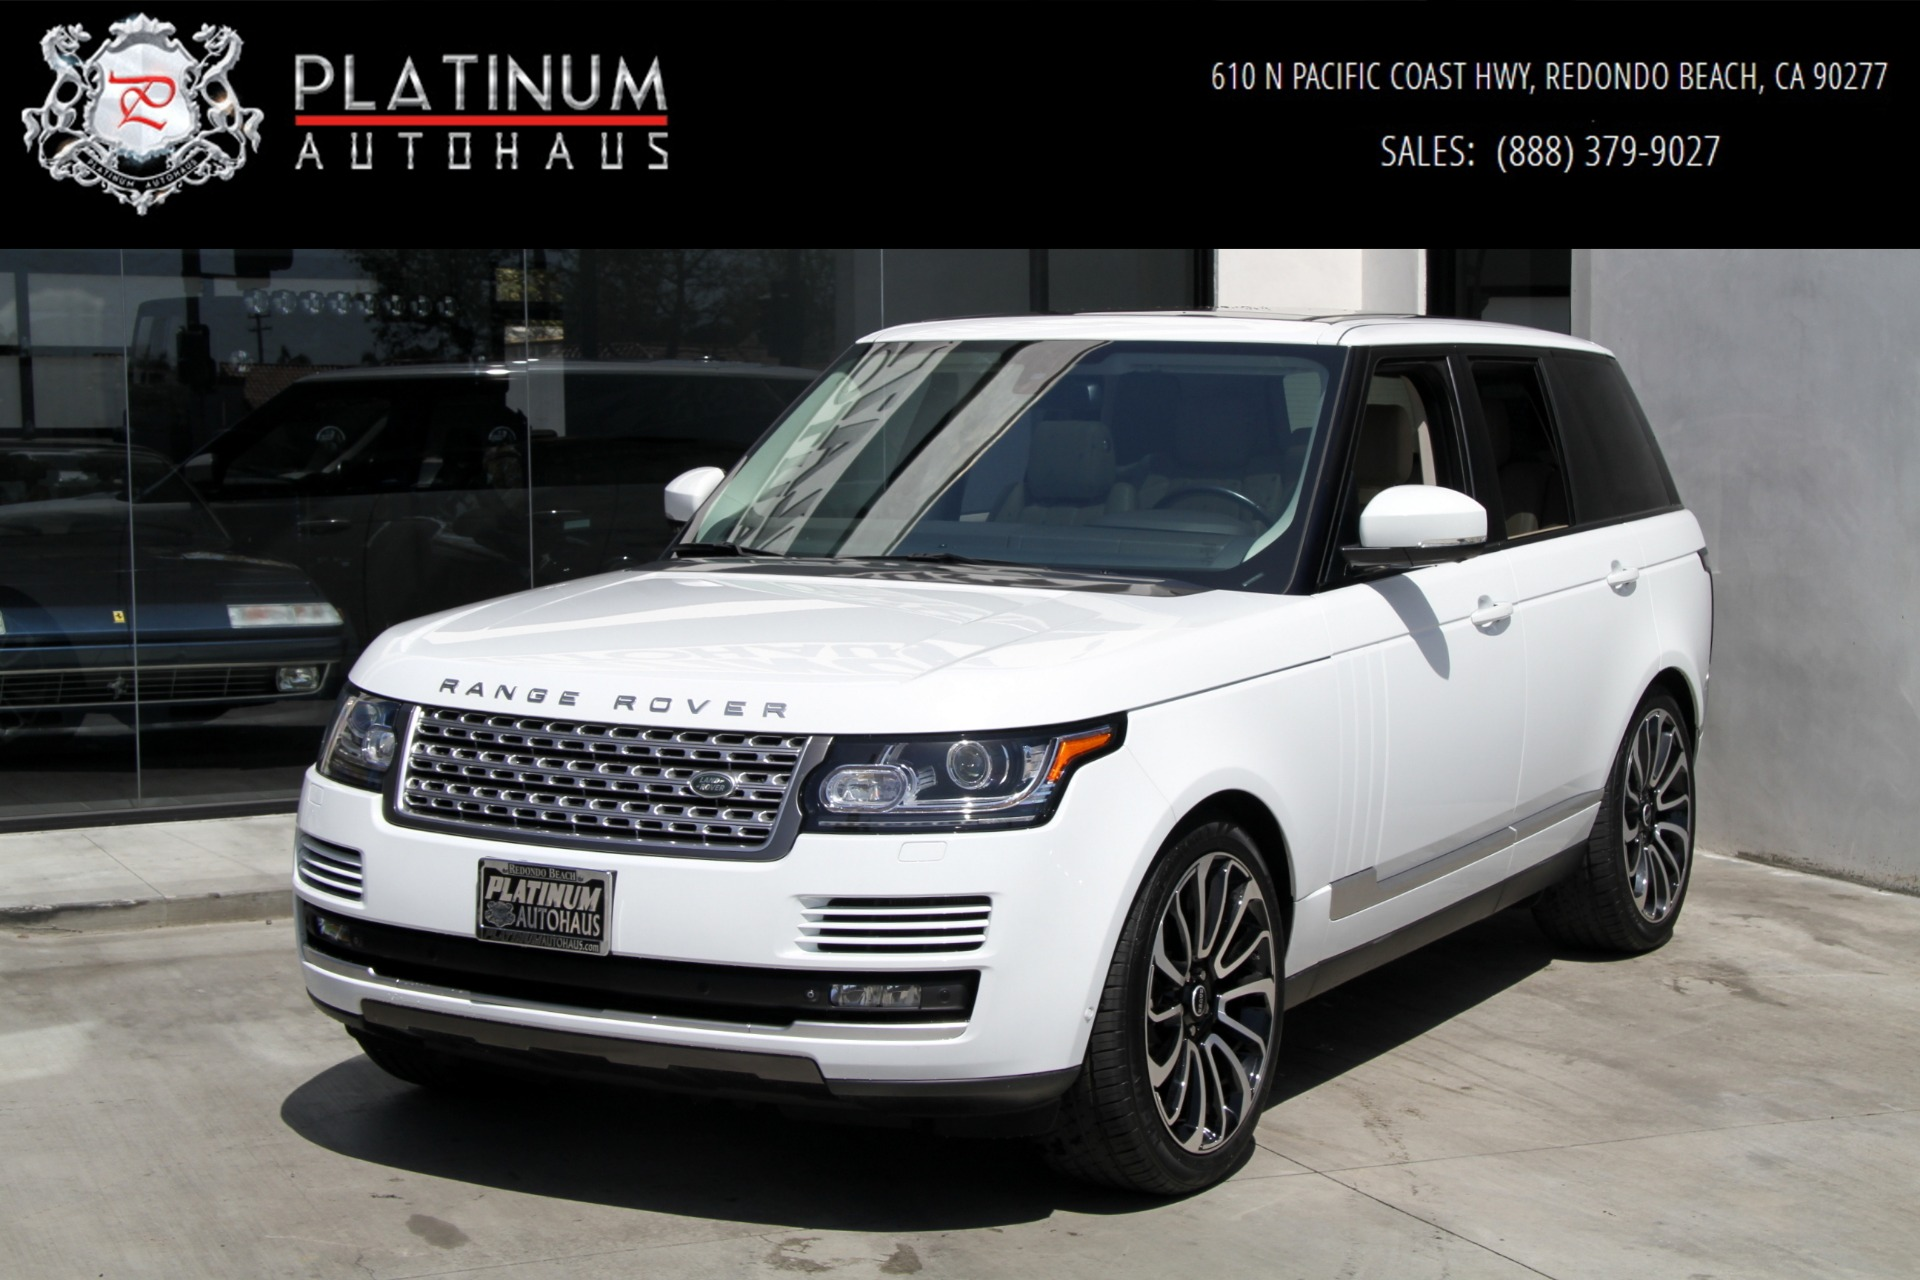 Land Rover For Sale Near Me >> 2014 Land Rover Range Rover Hse Stock 6133 For Sale Near